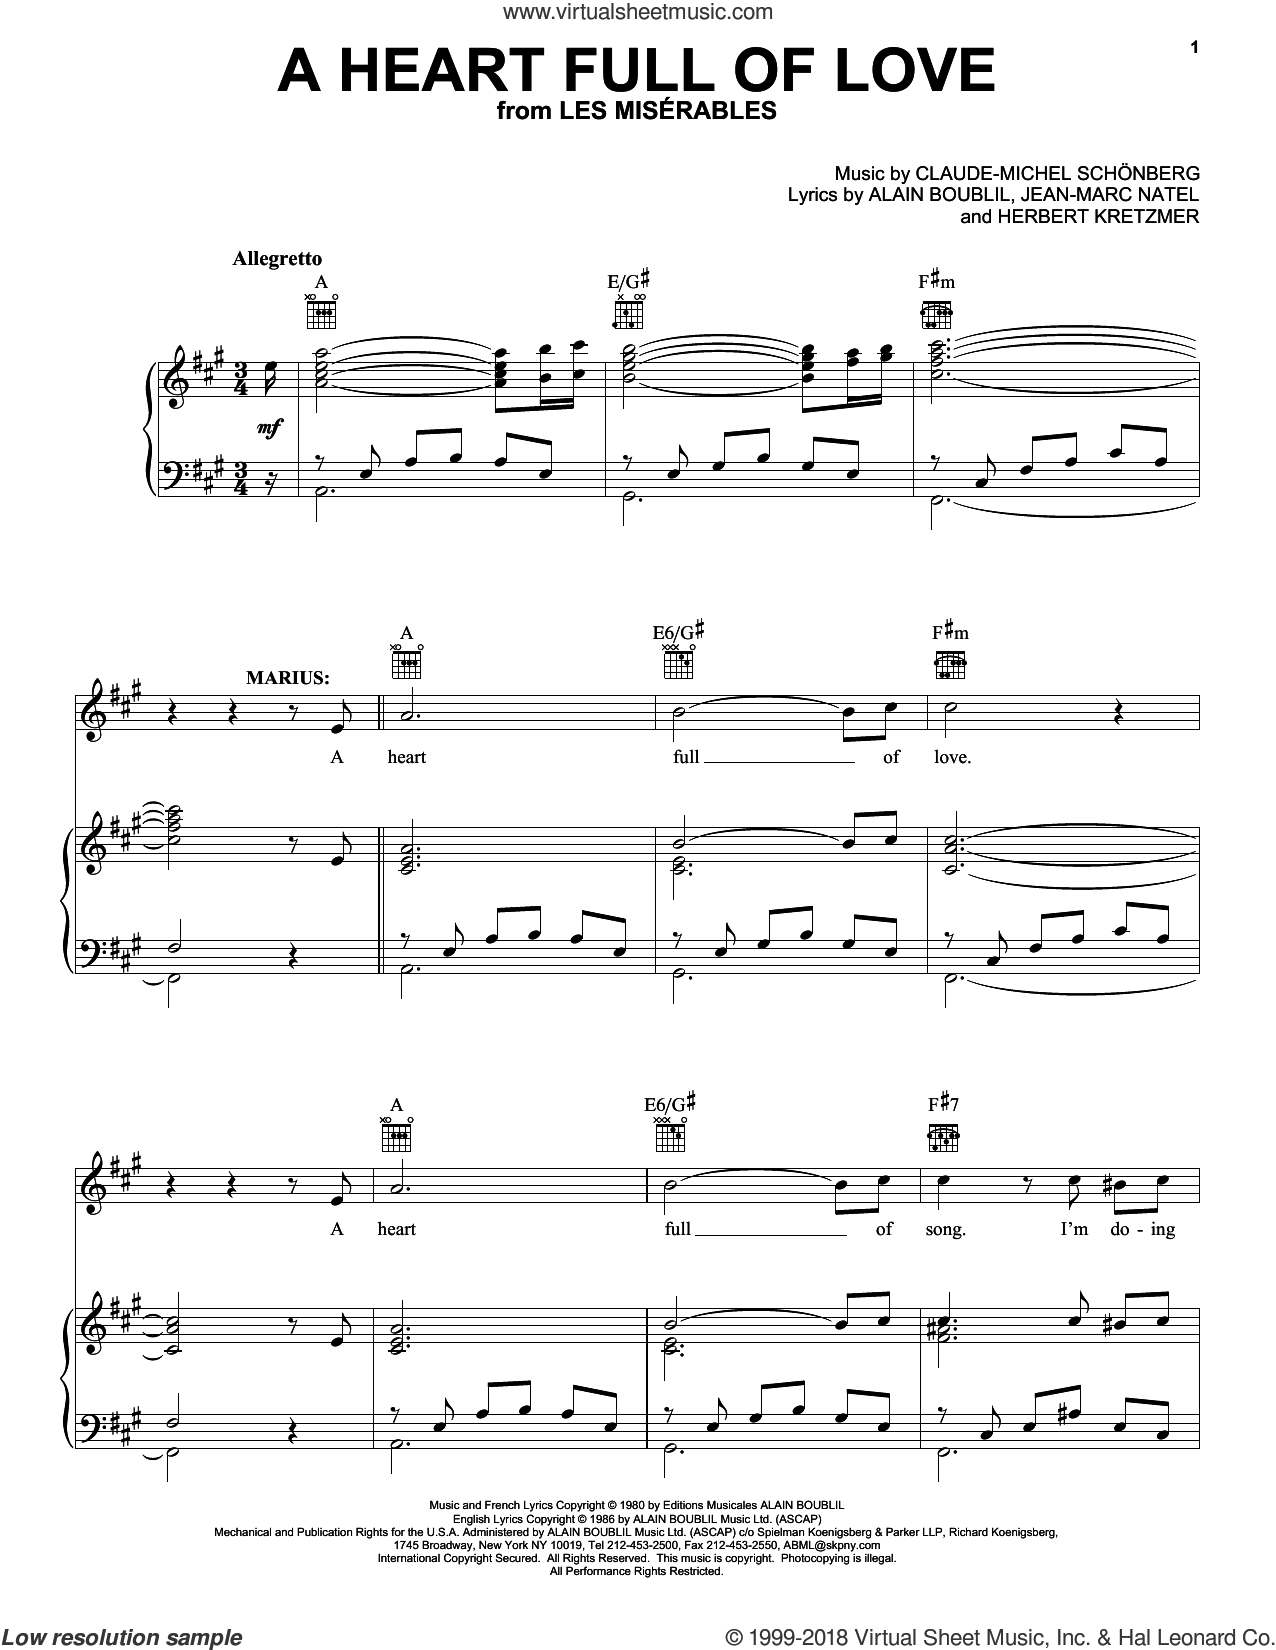 A Heart Full Of Love sheet music for voice, piano or guitar by Jean-Marc Natel, Alain Boublil, Claude-Michel Schonberg and Herbert Kretzmer. Score Image Preview.